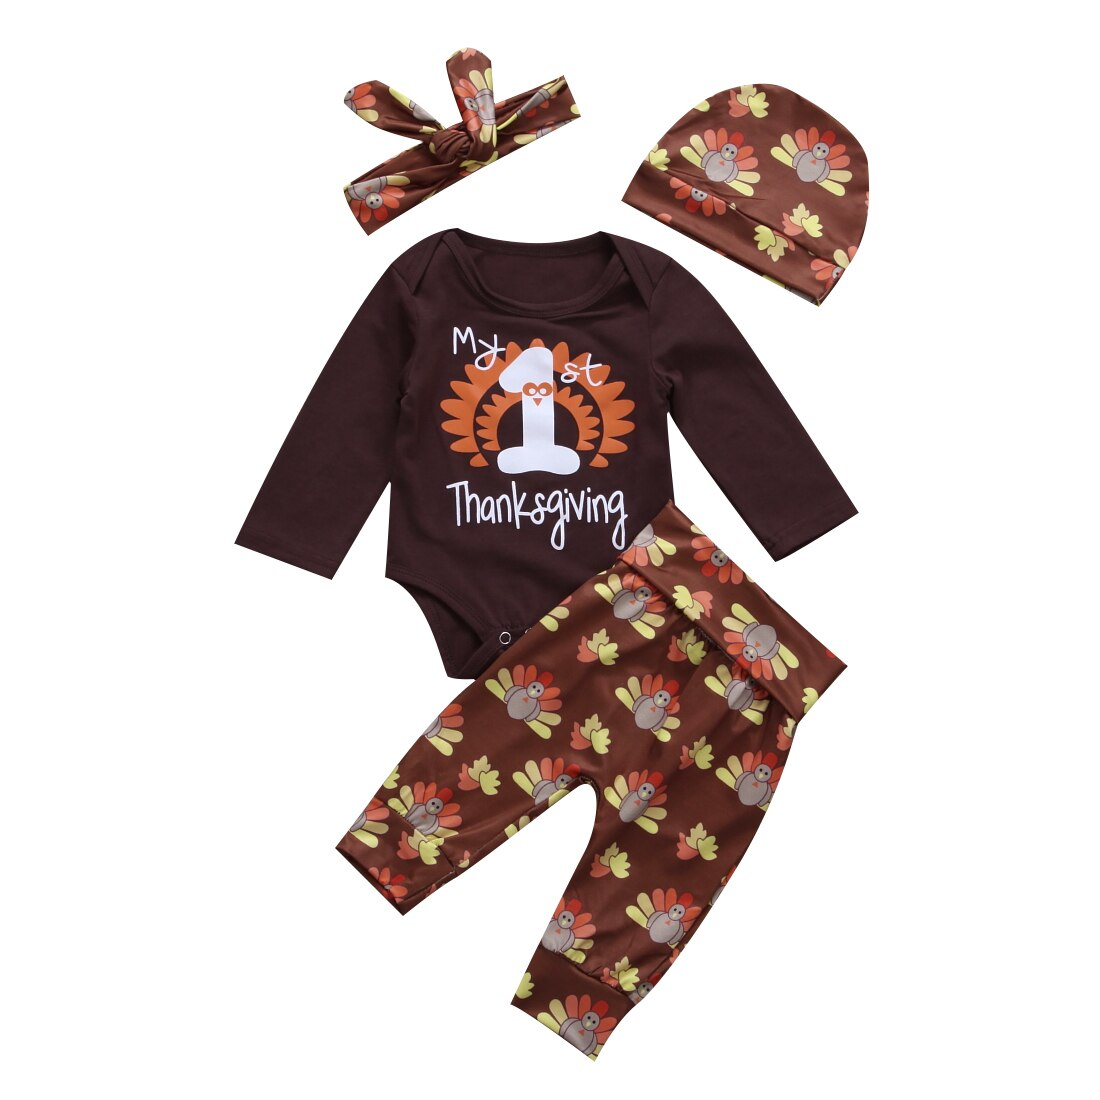 4Pcs Infant Baby Boy Girl Thanksgiving Outfit Set Long Sleeve Bodysuit Pants with Hat and Headband